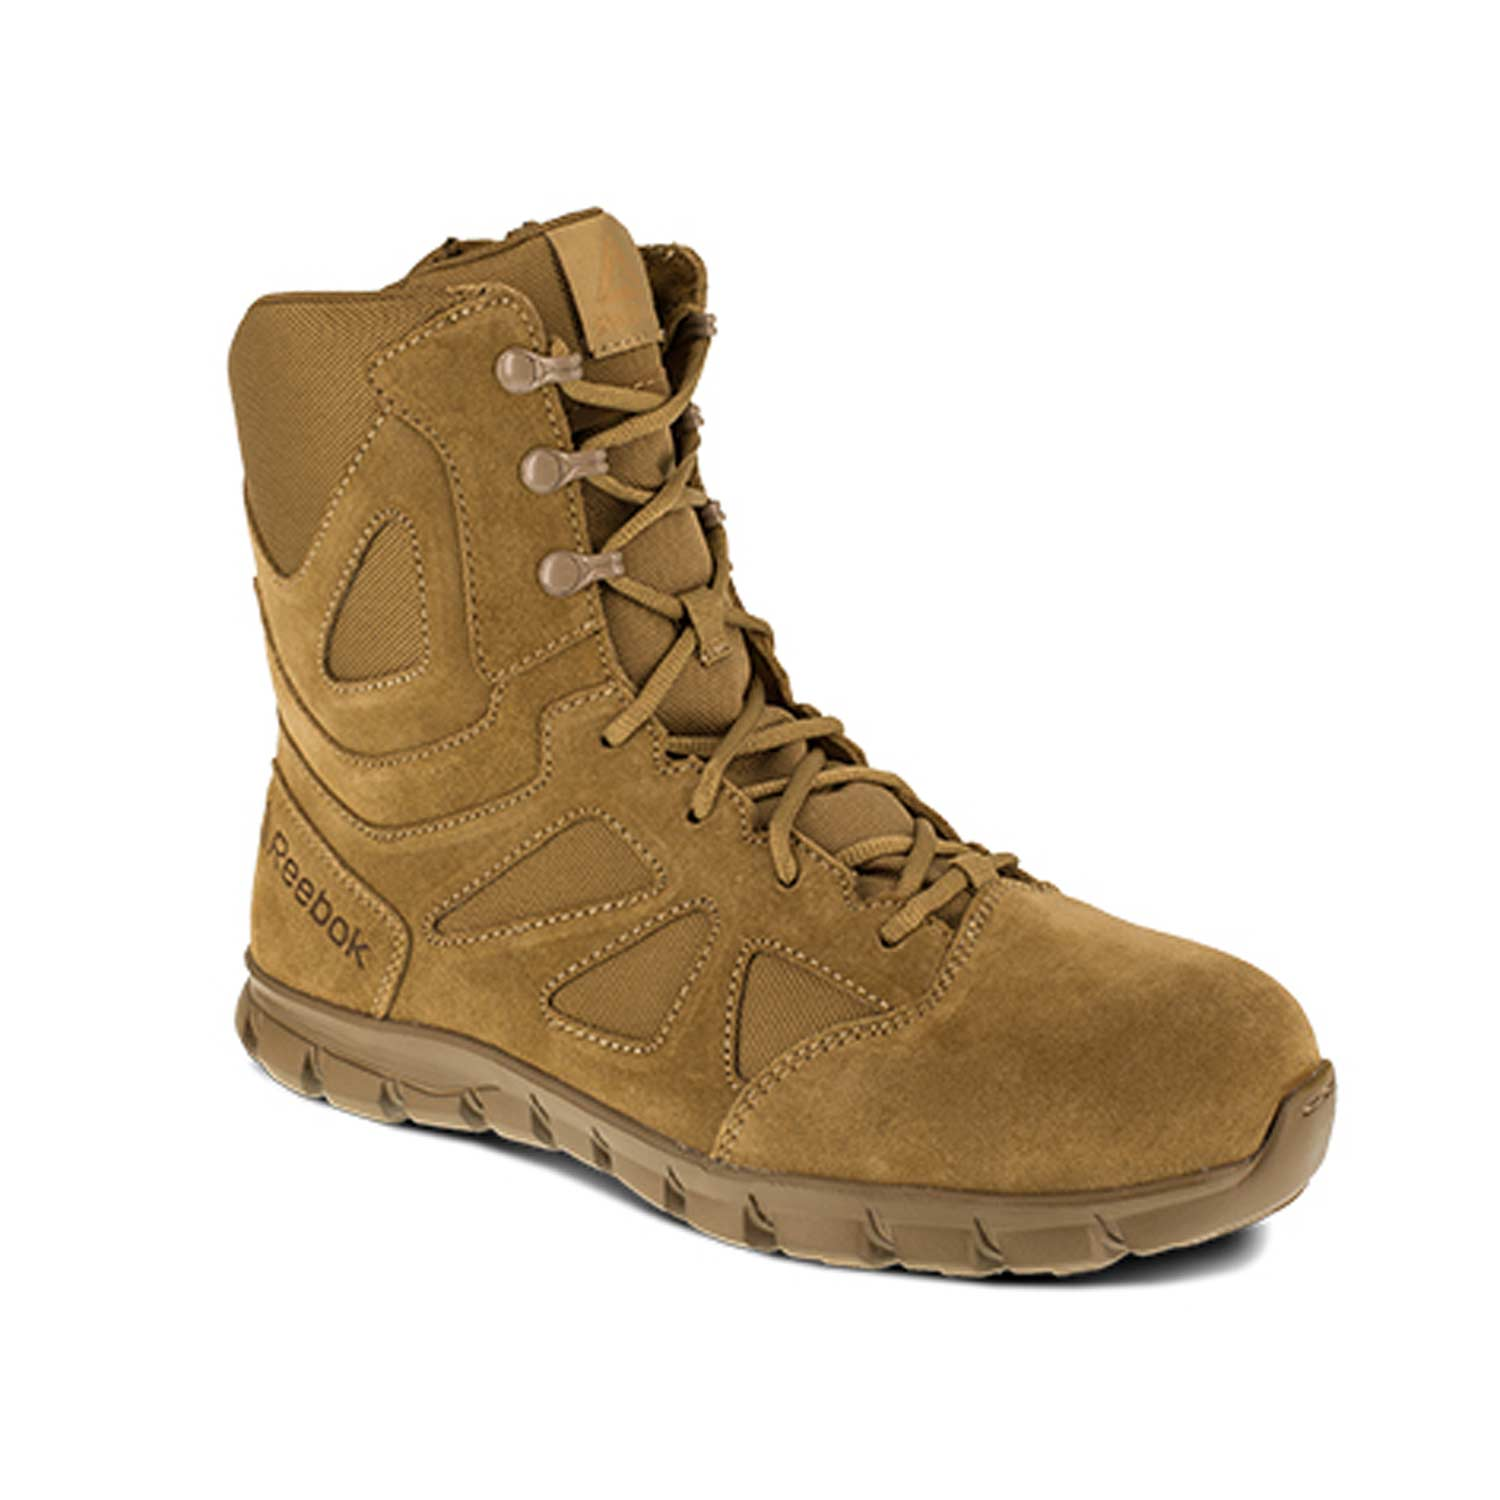 Reebok Safety Toe Sublite Cushion Boots